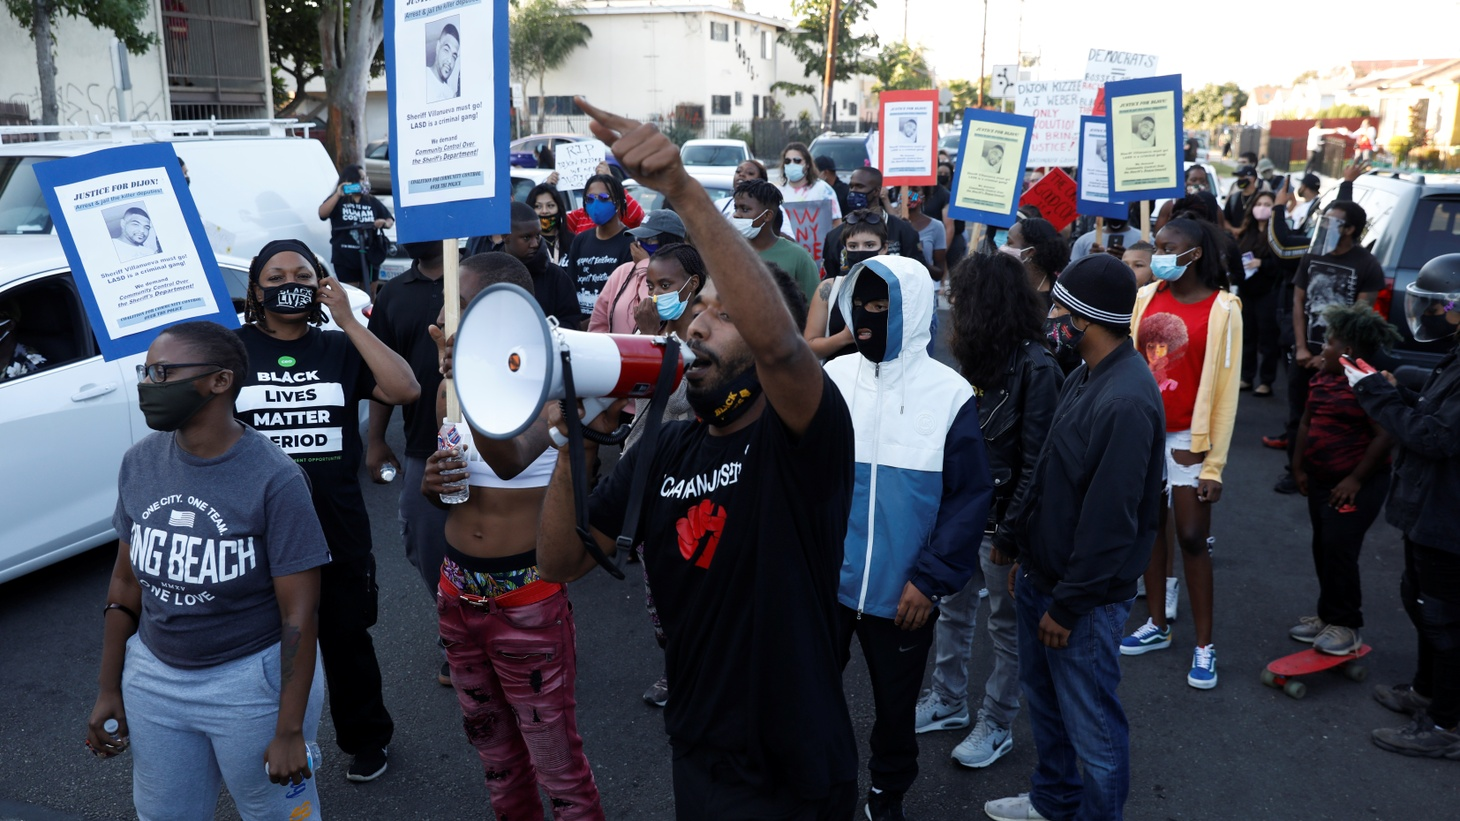 Demonstrators protest against the shooting of Dijon Kizzee by Los Angeles sheriff's deputies, in Los Angeles, California, U.S., September 1, 2020.